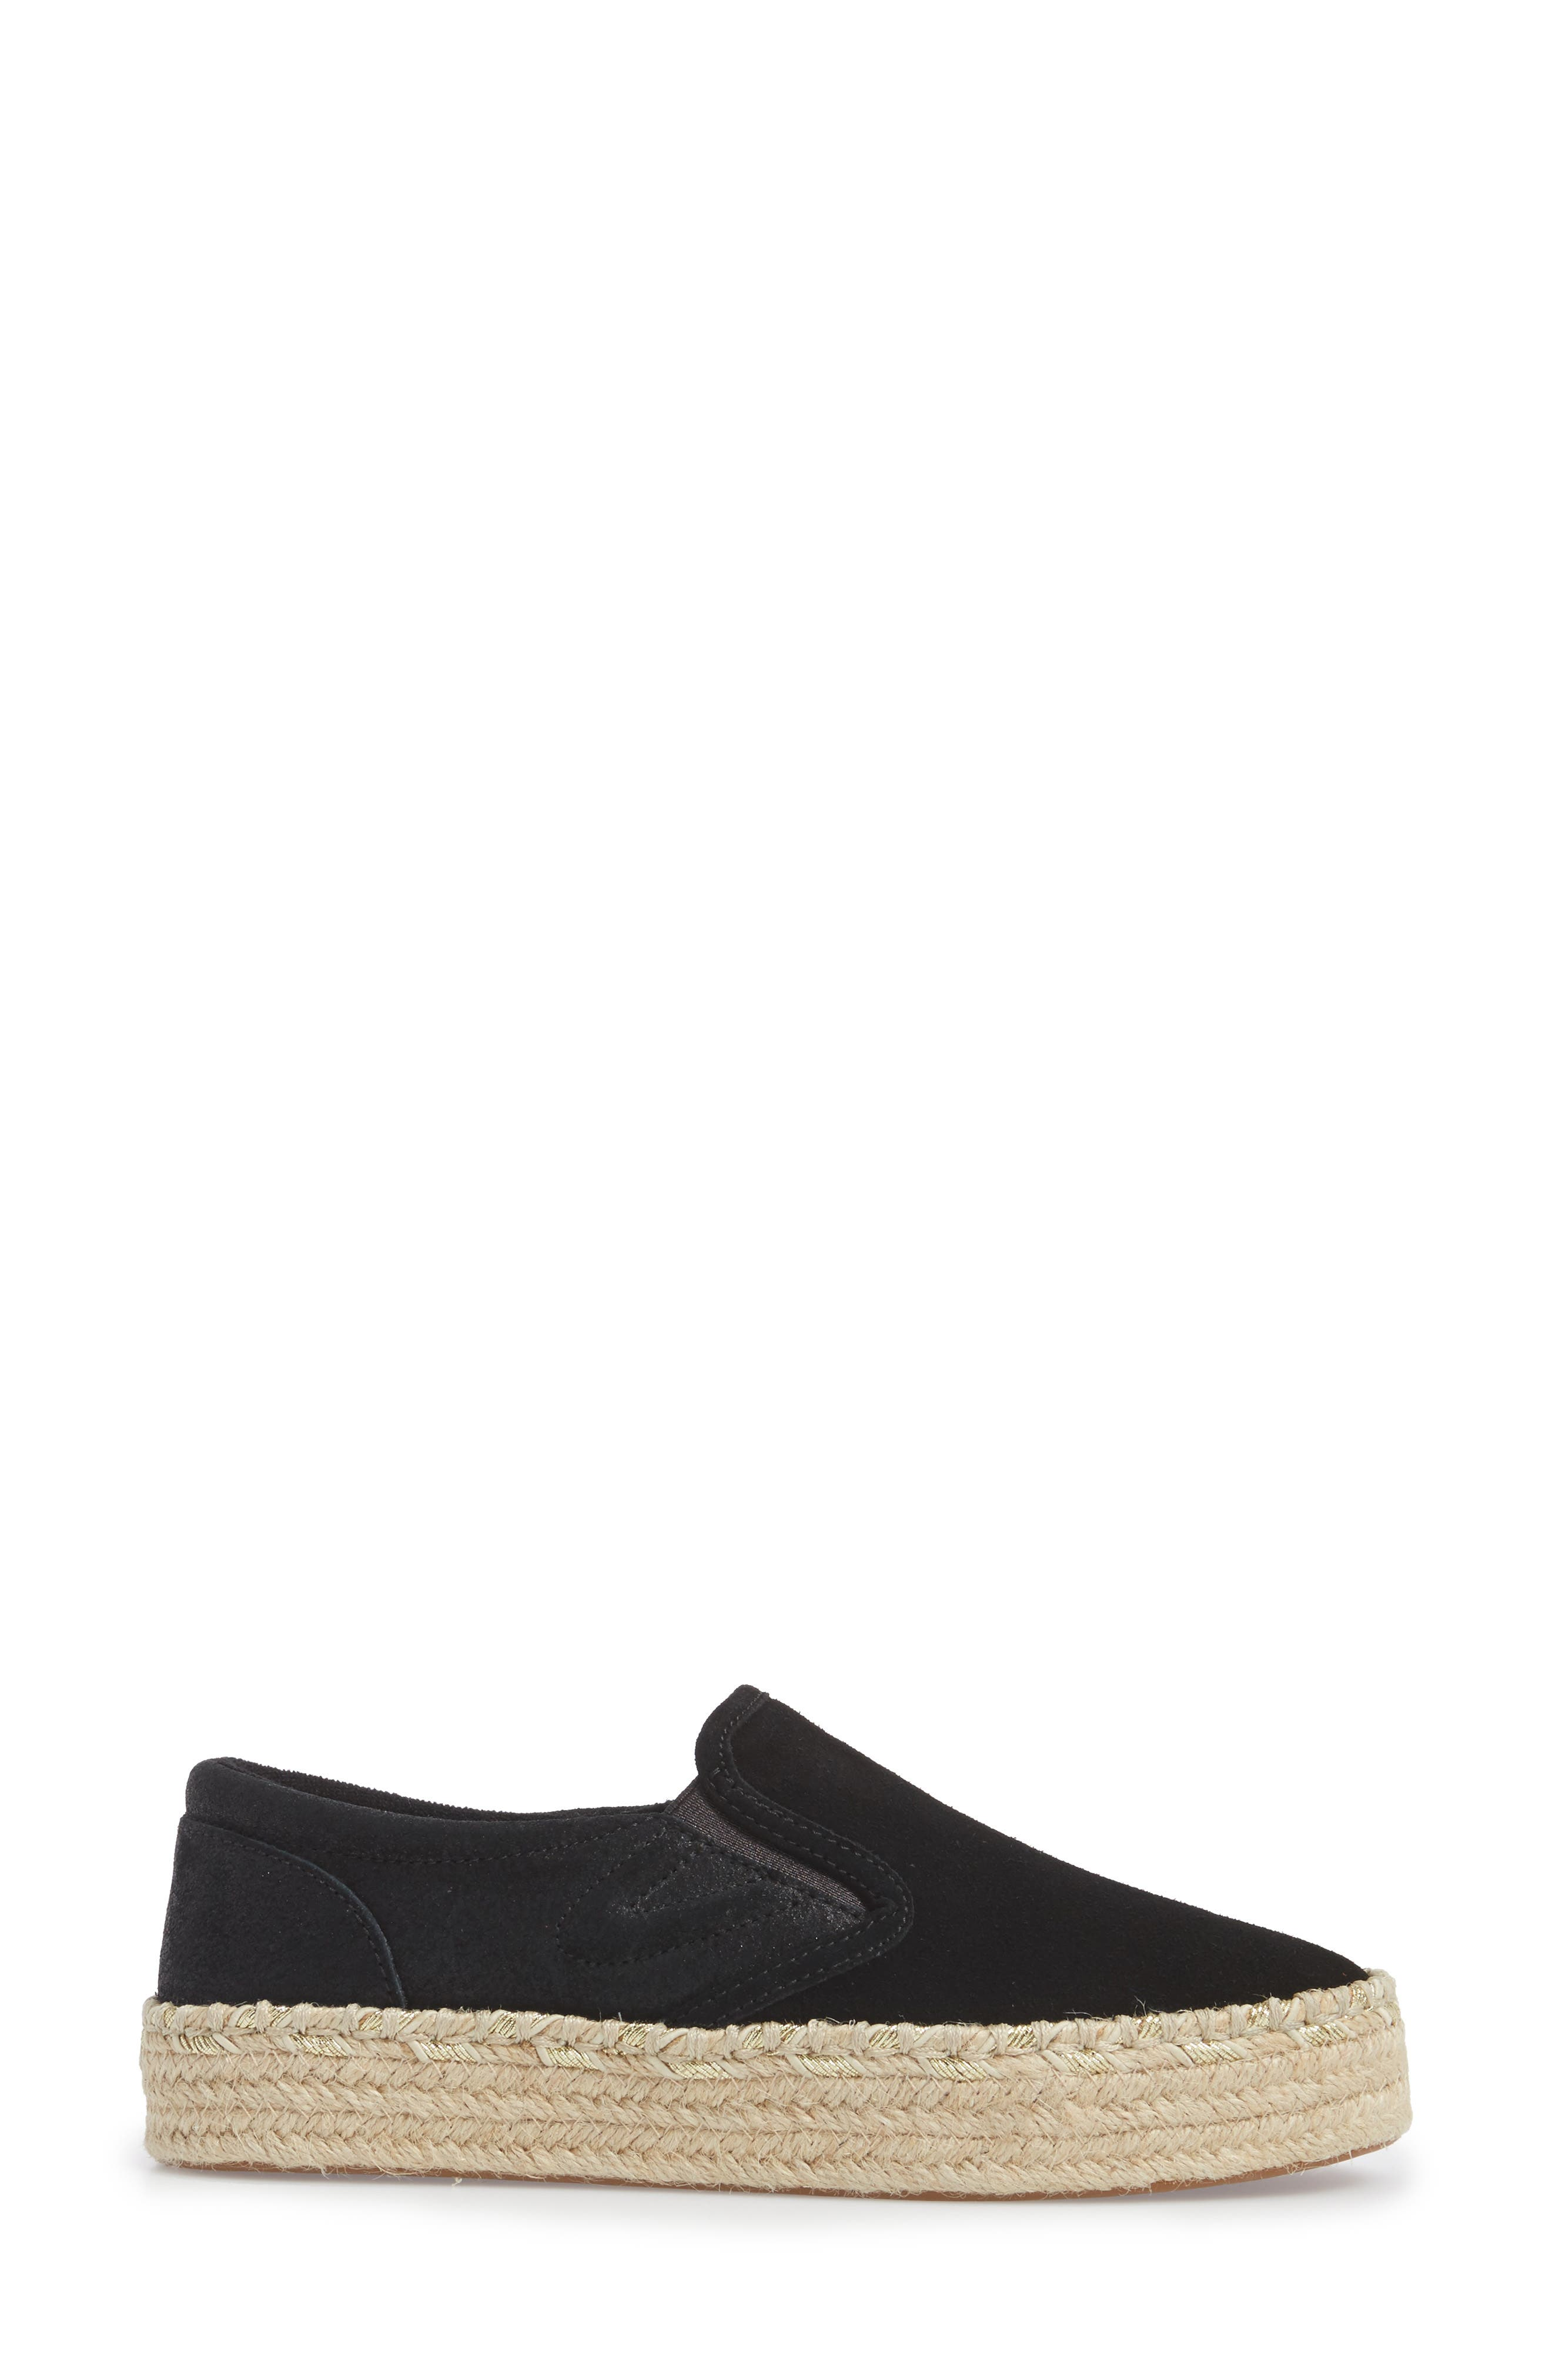 Alternate Image 3  - Tretorn Espadrille Slip-On (Women)